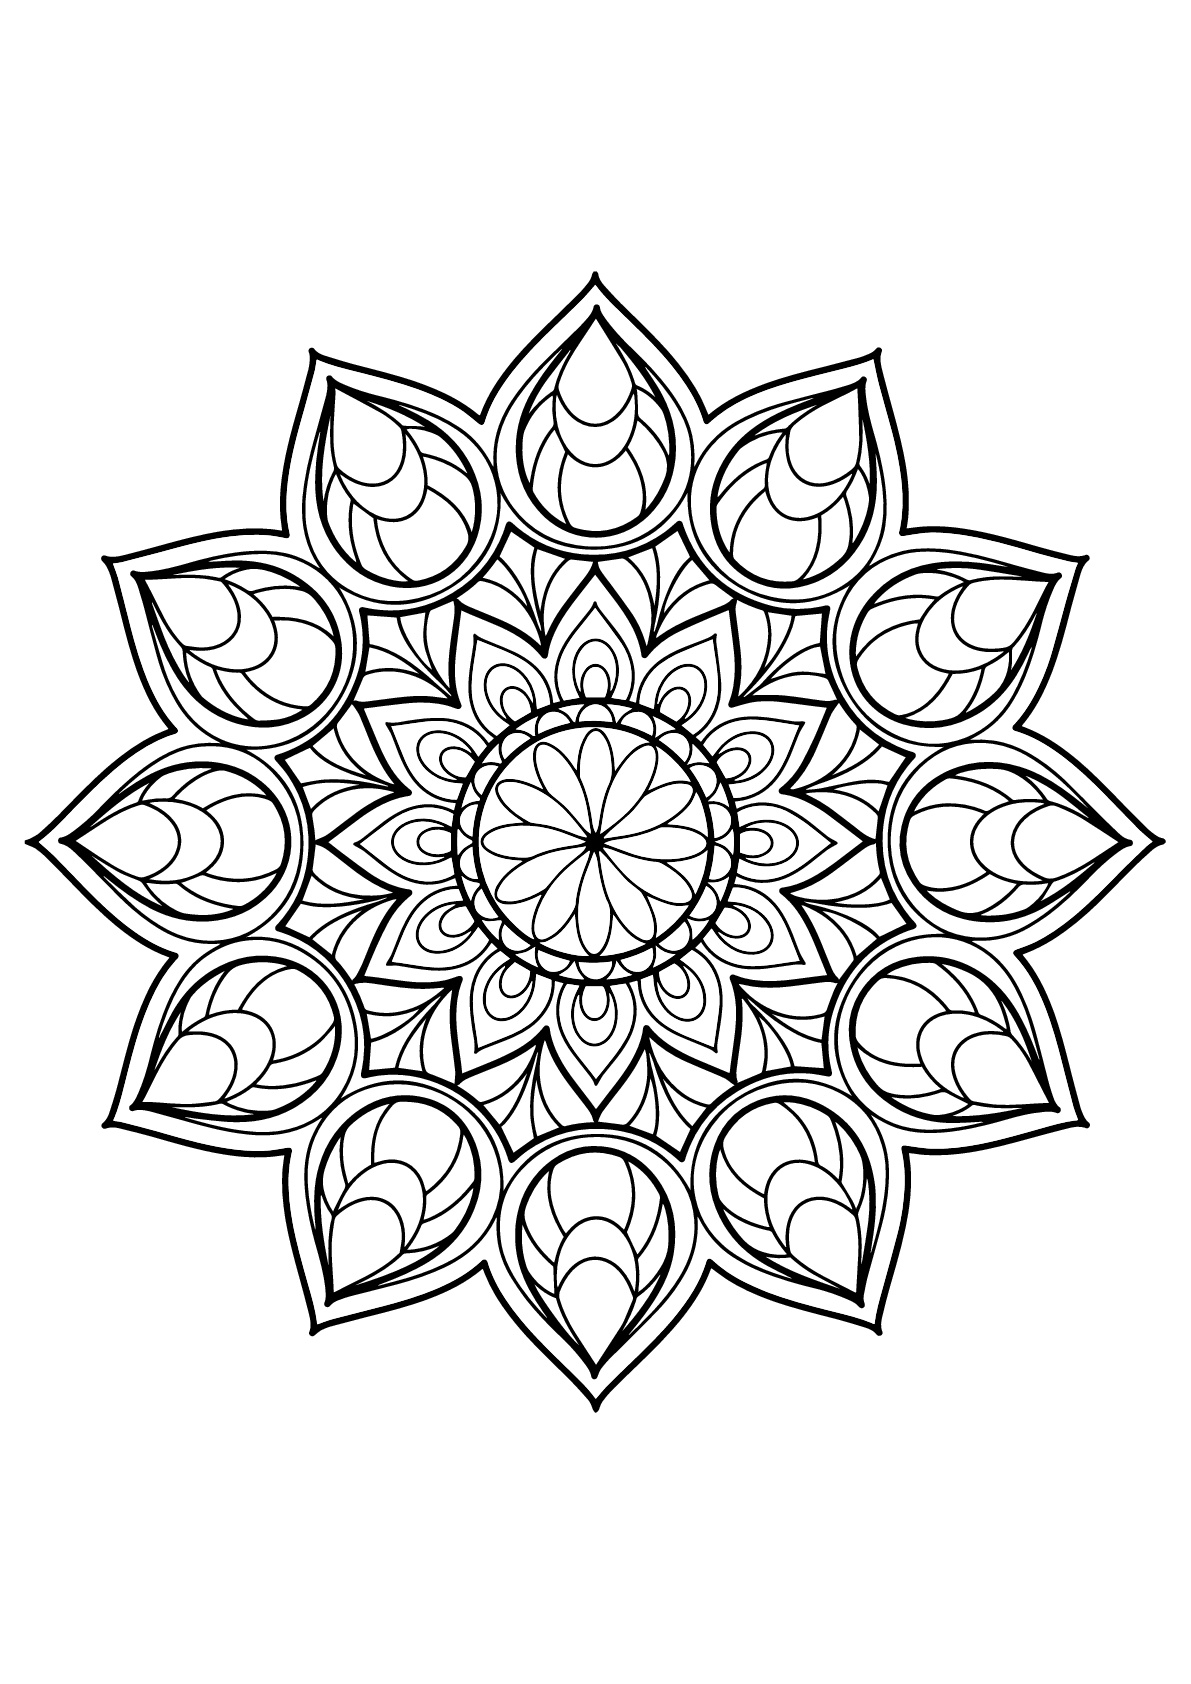 free coloring pages for adults printable hard coloring pages for adults best coloring pages for kids pages coloring free for adults printable